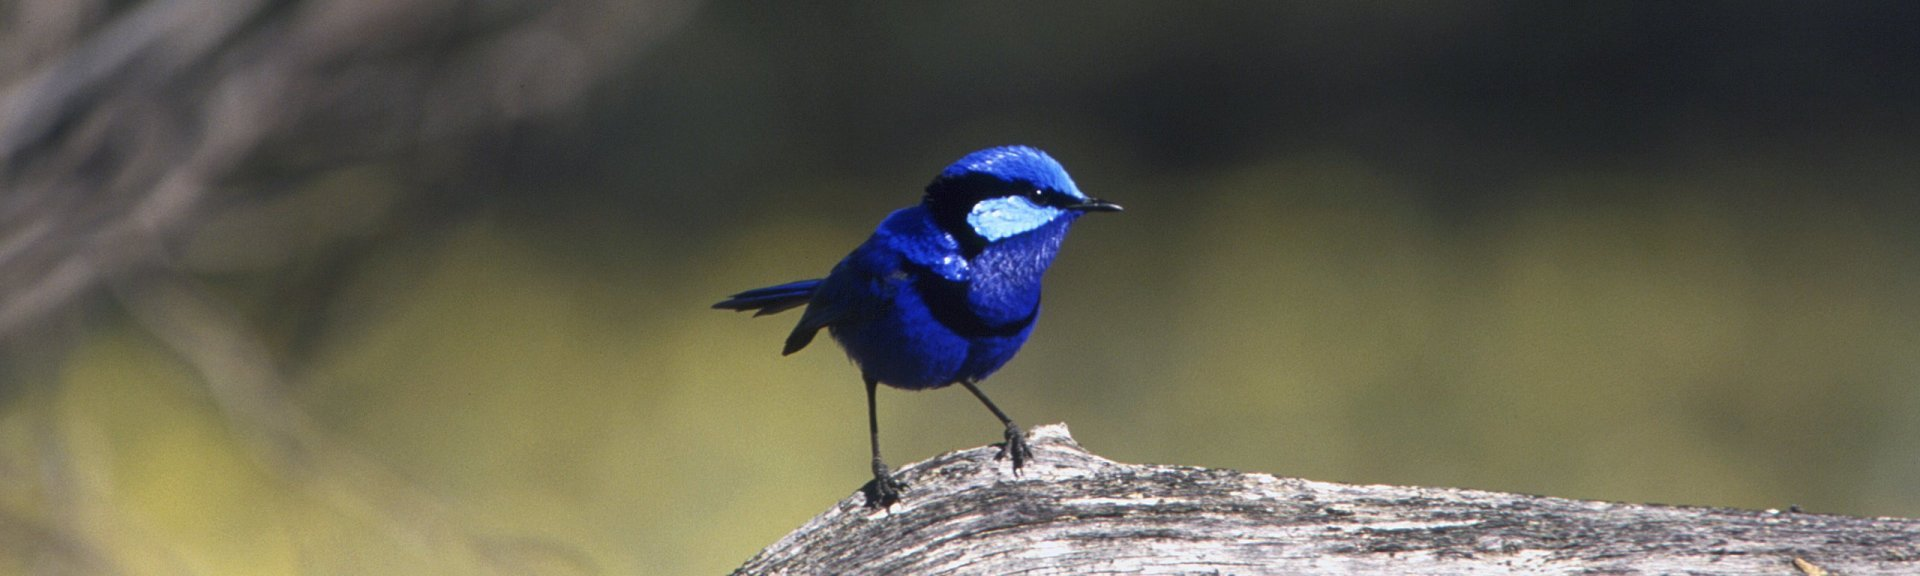 Male splendid fairy-wren with breeding plumage. Photo: Brian Furby